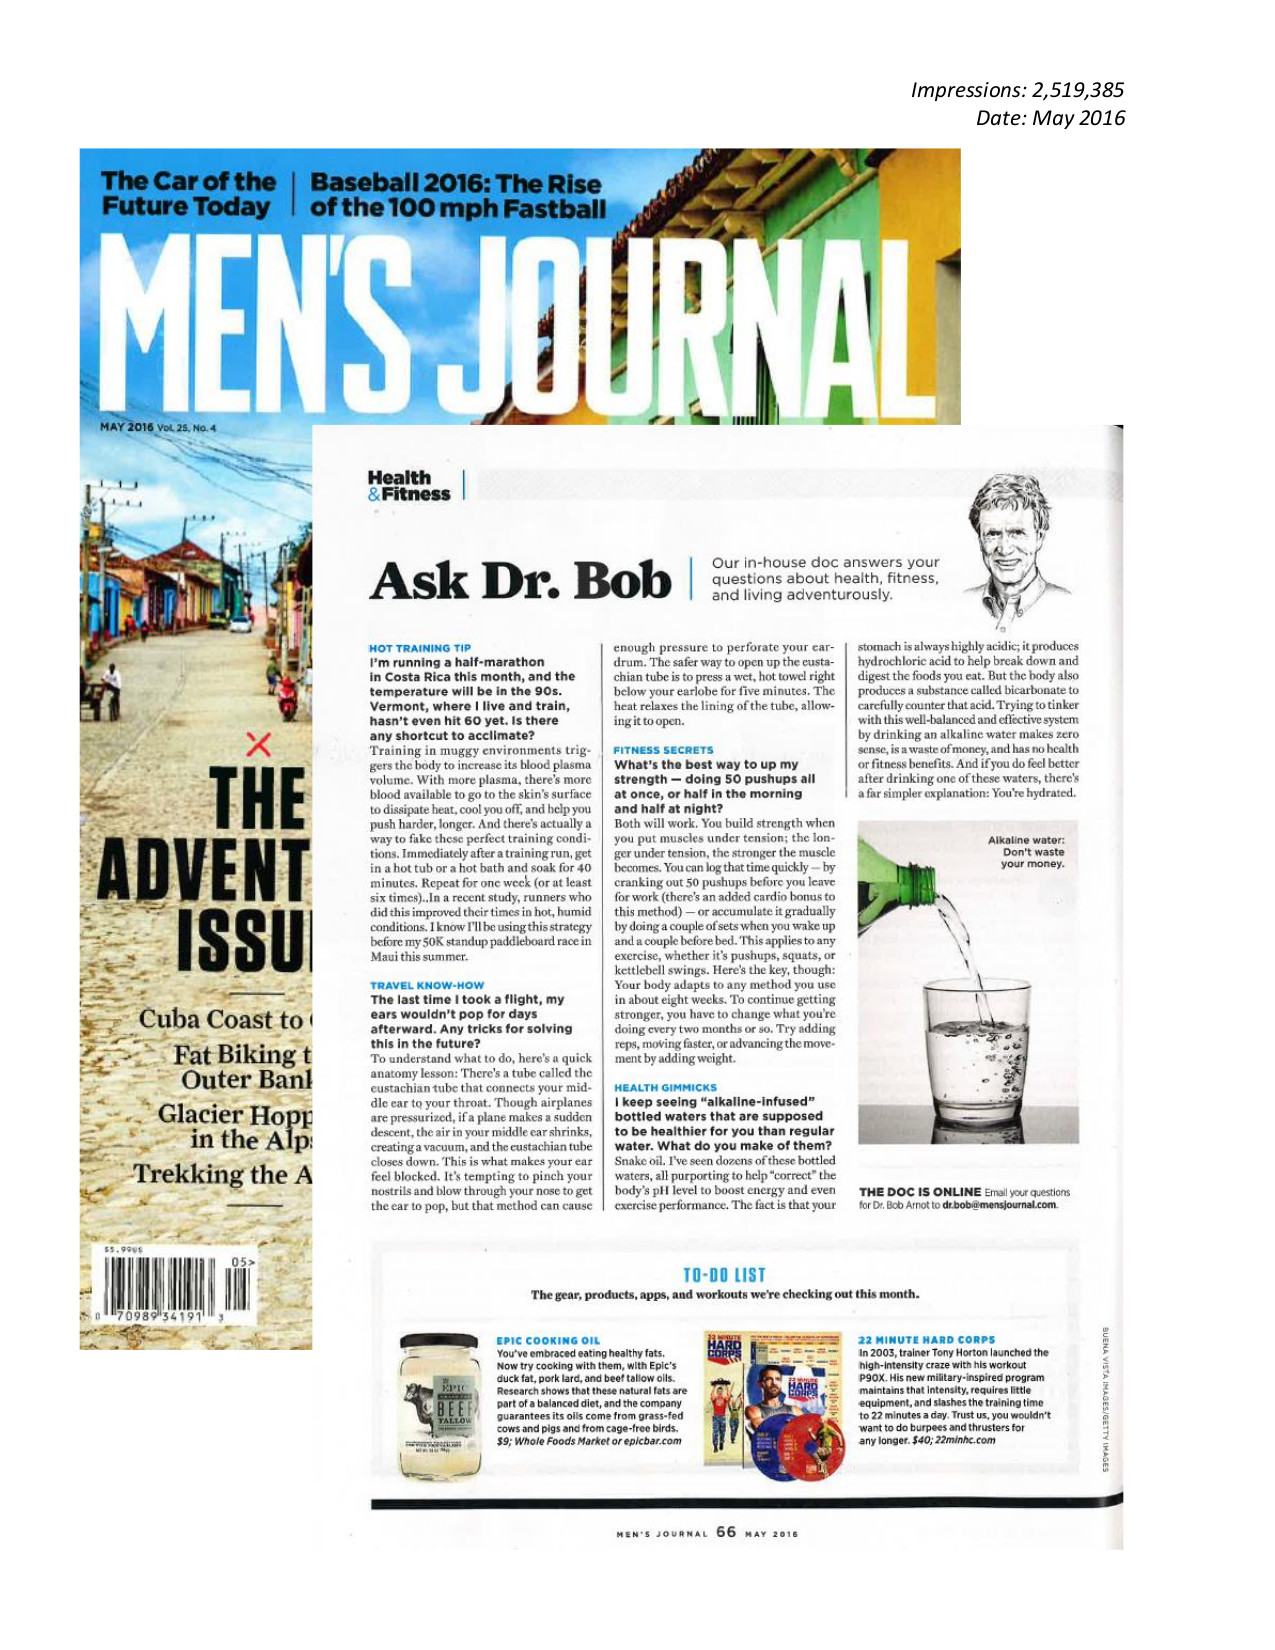 Men's Journal, May 2016